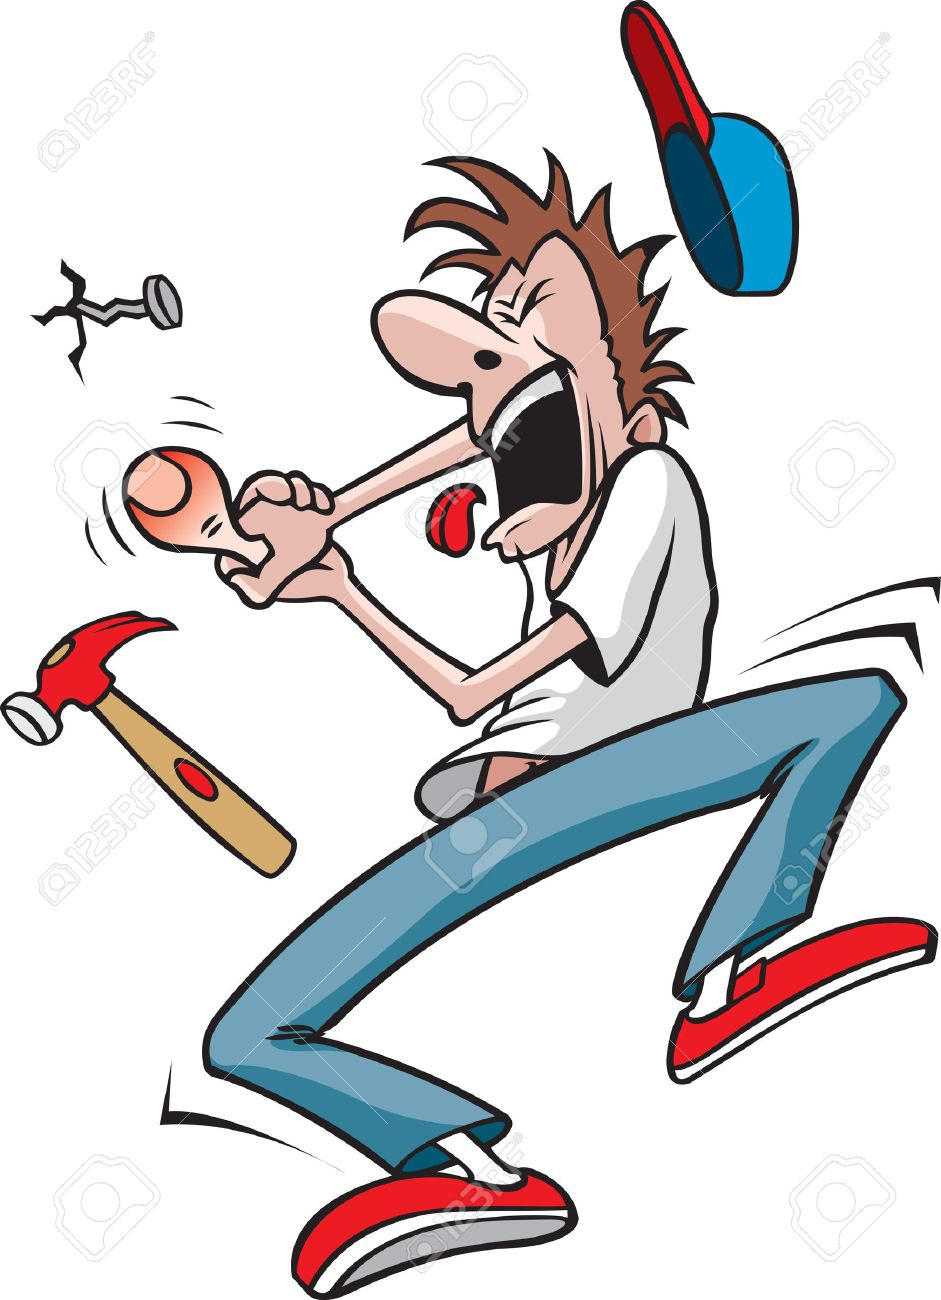 Guy hits thumb with hammer Cartoon of a Man who has just hit his thumb with a hammer - 24158196